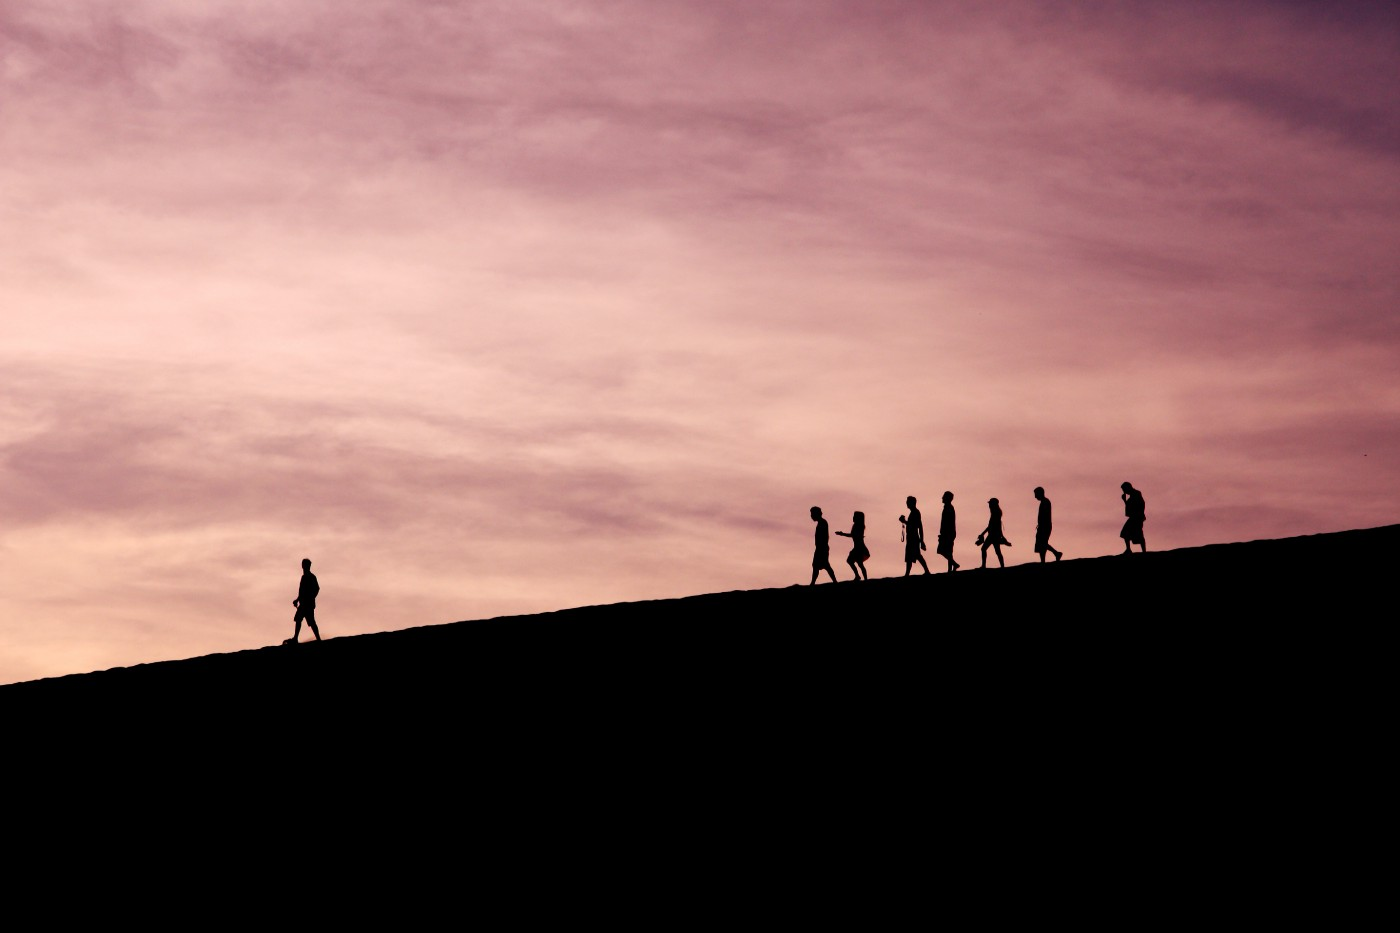 person walking in front of a group of people down a hill